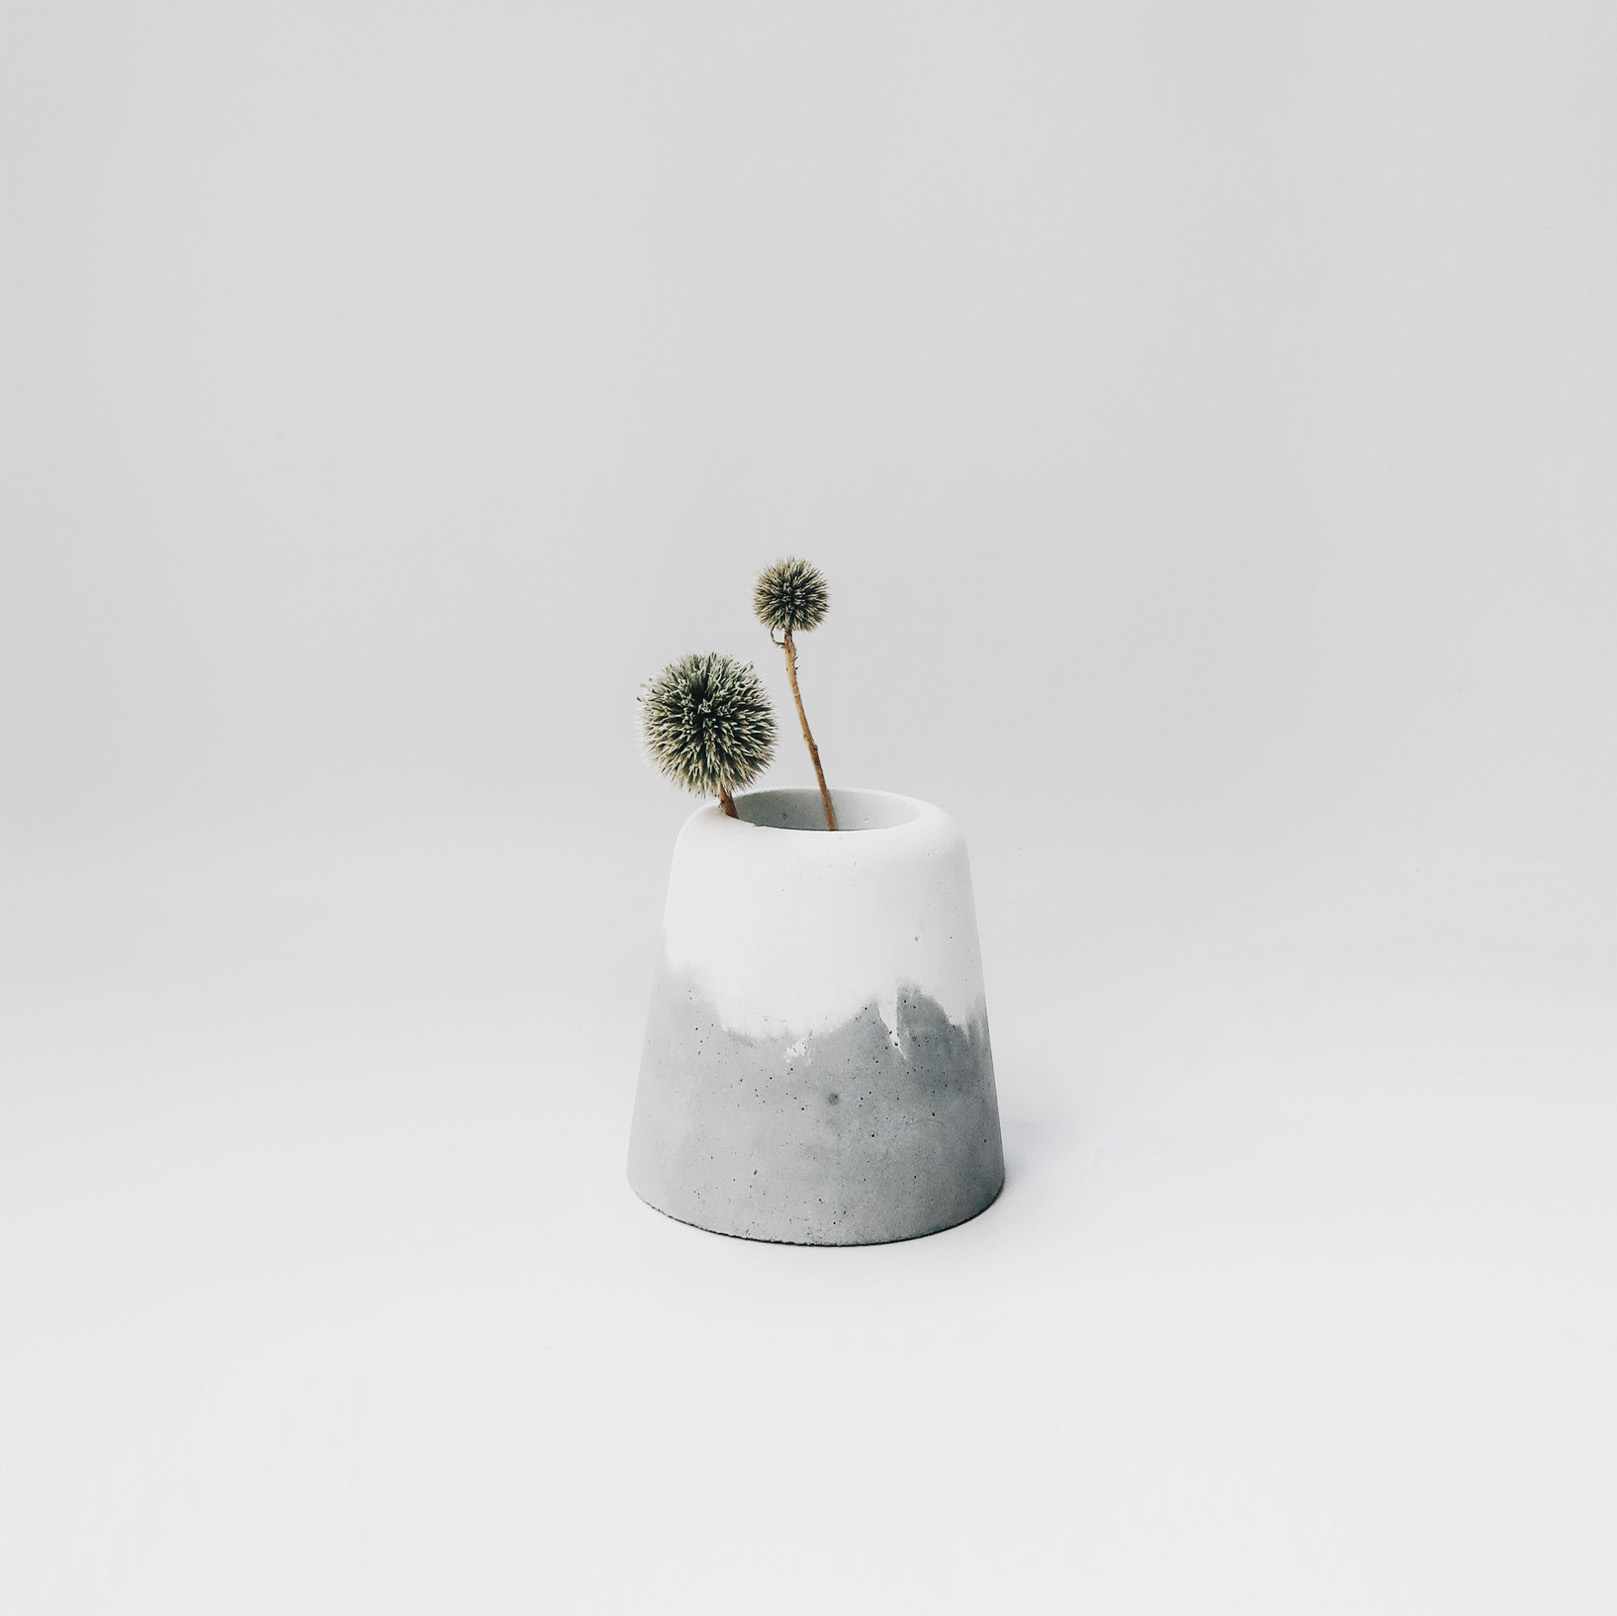 SNOW VOLCAN 雪火山雙色水泥盆器・牙刷座・置物盆 / Grey & White Concrete pot